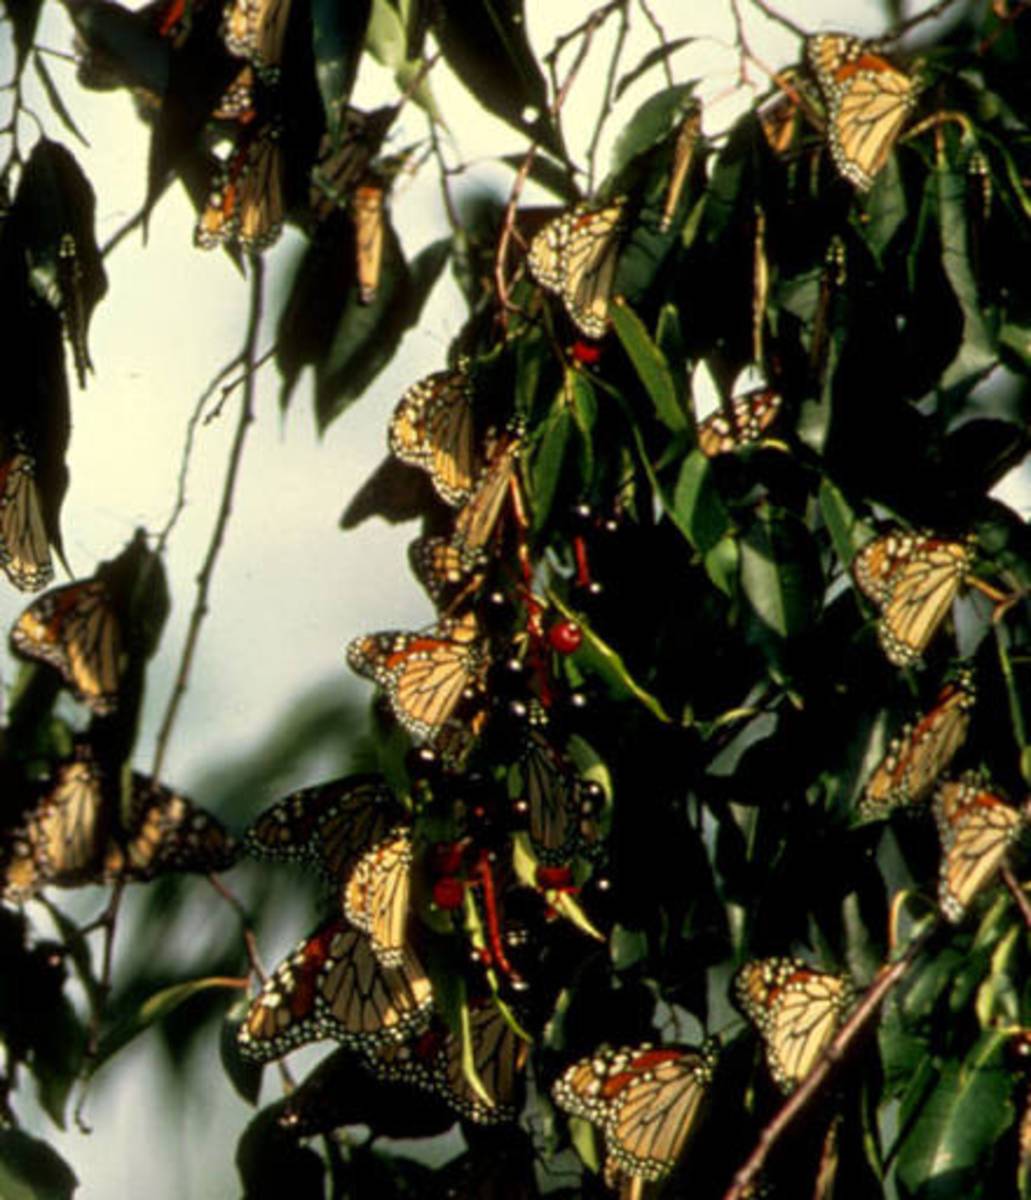 Migrating Monarch Butterflies Resting in a Tree